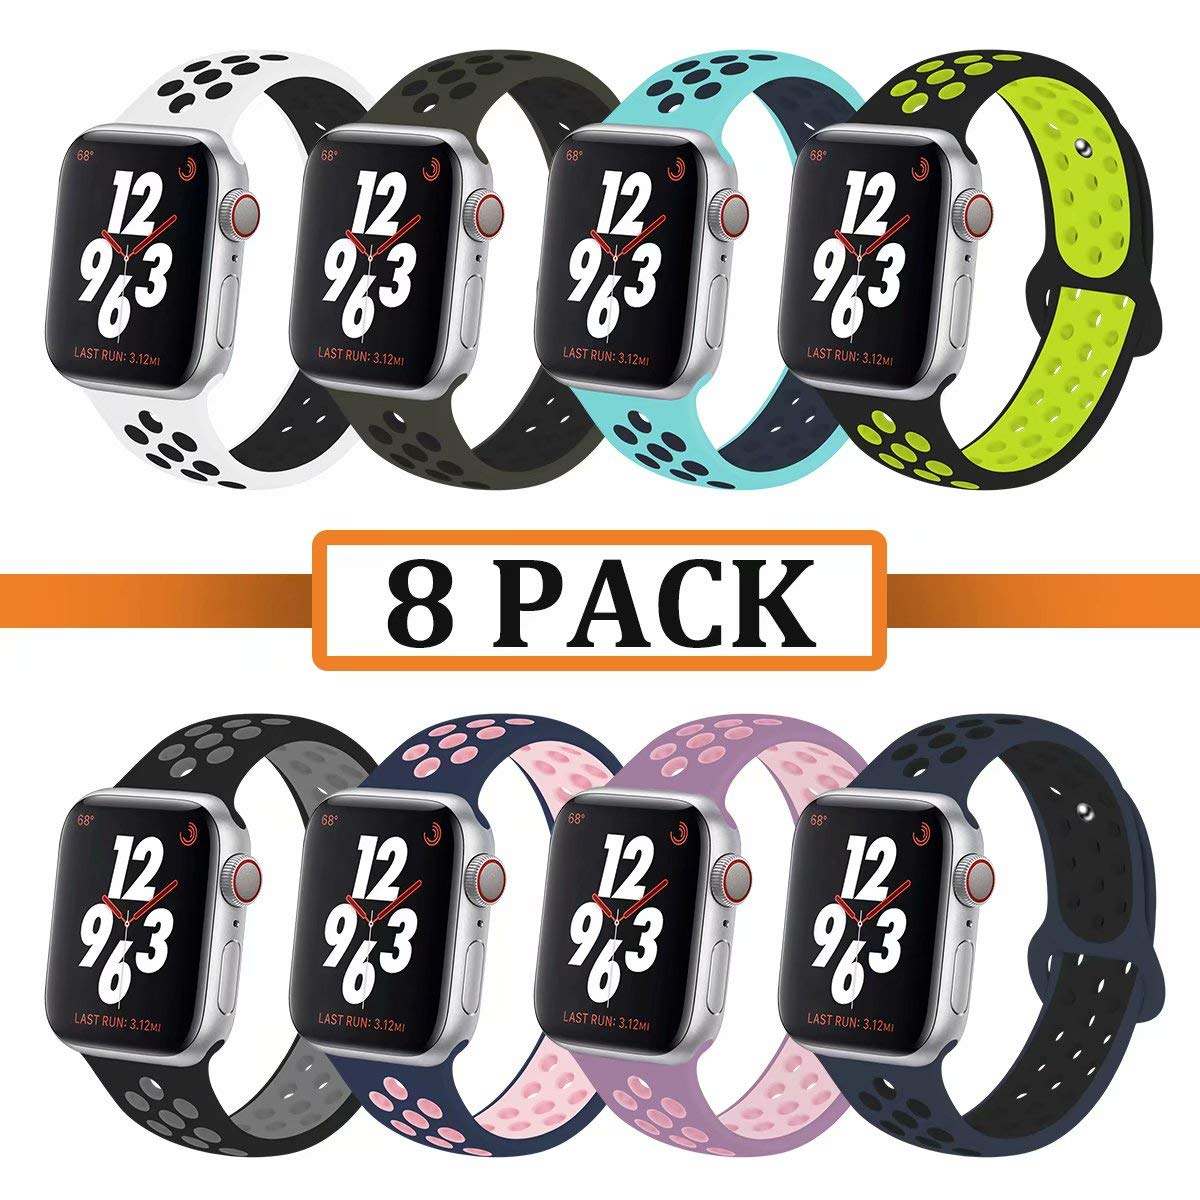 YC YANCH Greatou Compatible for Apple Watch Band 38mm,Soft Silicone Sport Band Replacement Wrist Strap Compatible for iWatch Apple Watch Series 3/2/1,Nike+,Sport,Edition,S/M,8 Pack